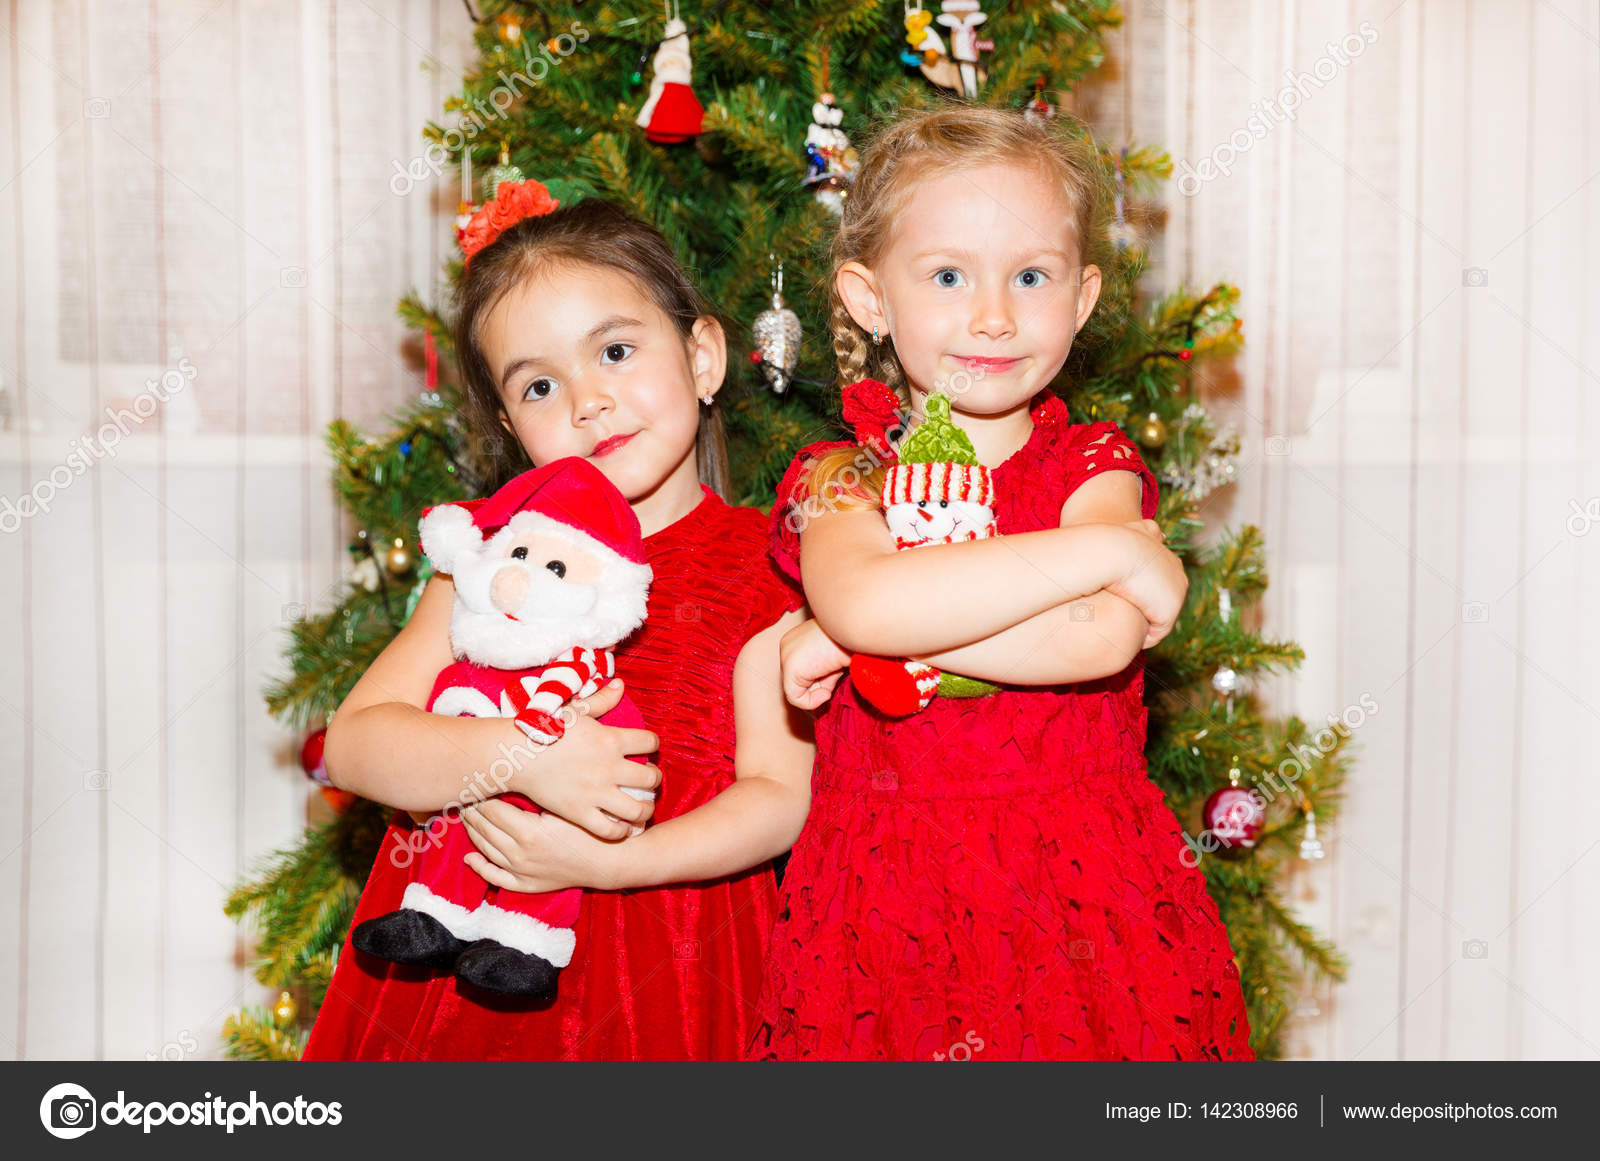 Portrait Of Two Children Girls Around A Christmas Tree Decorated Kid On Holiday New Year Stock Photo C Vitmarkov 142308966